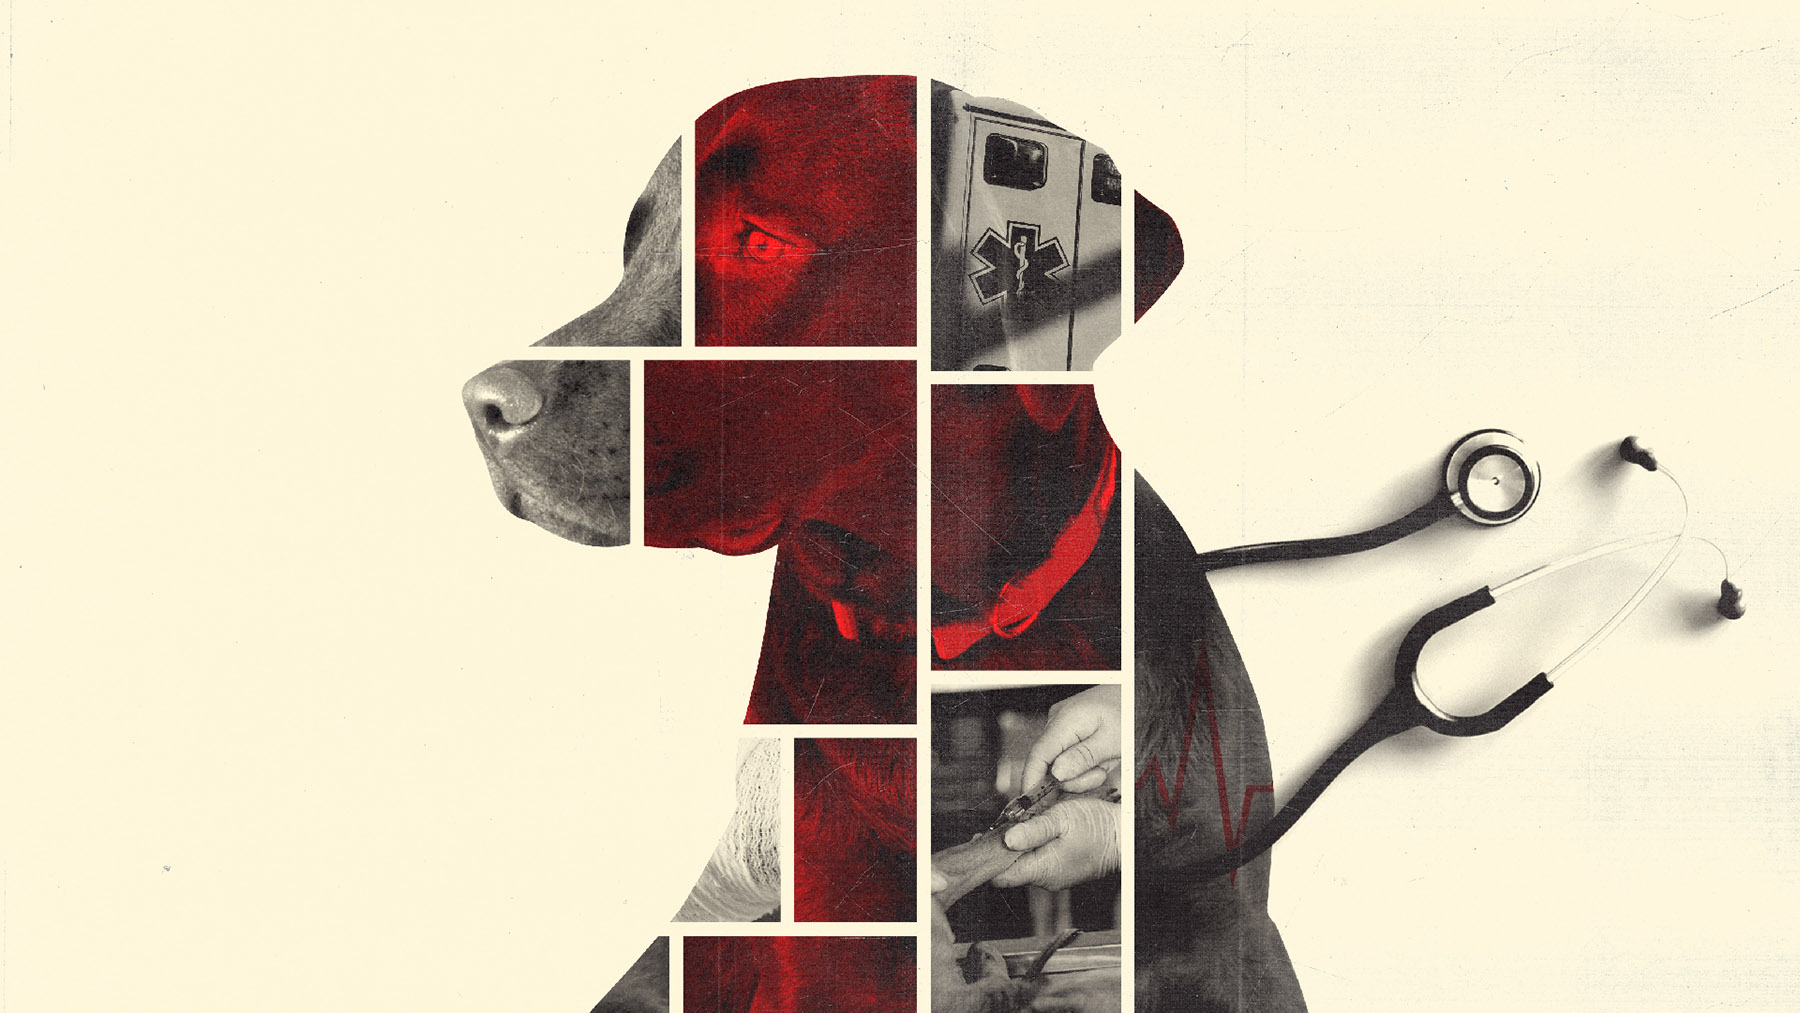 composite image of dog includes red shading and medical images. composed by Michael Vincent